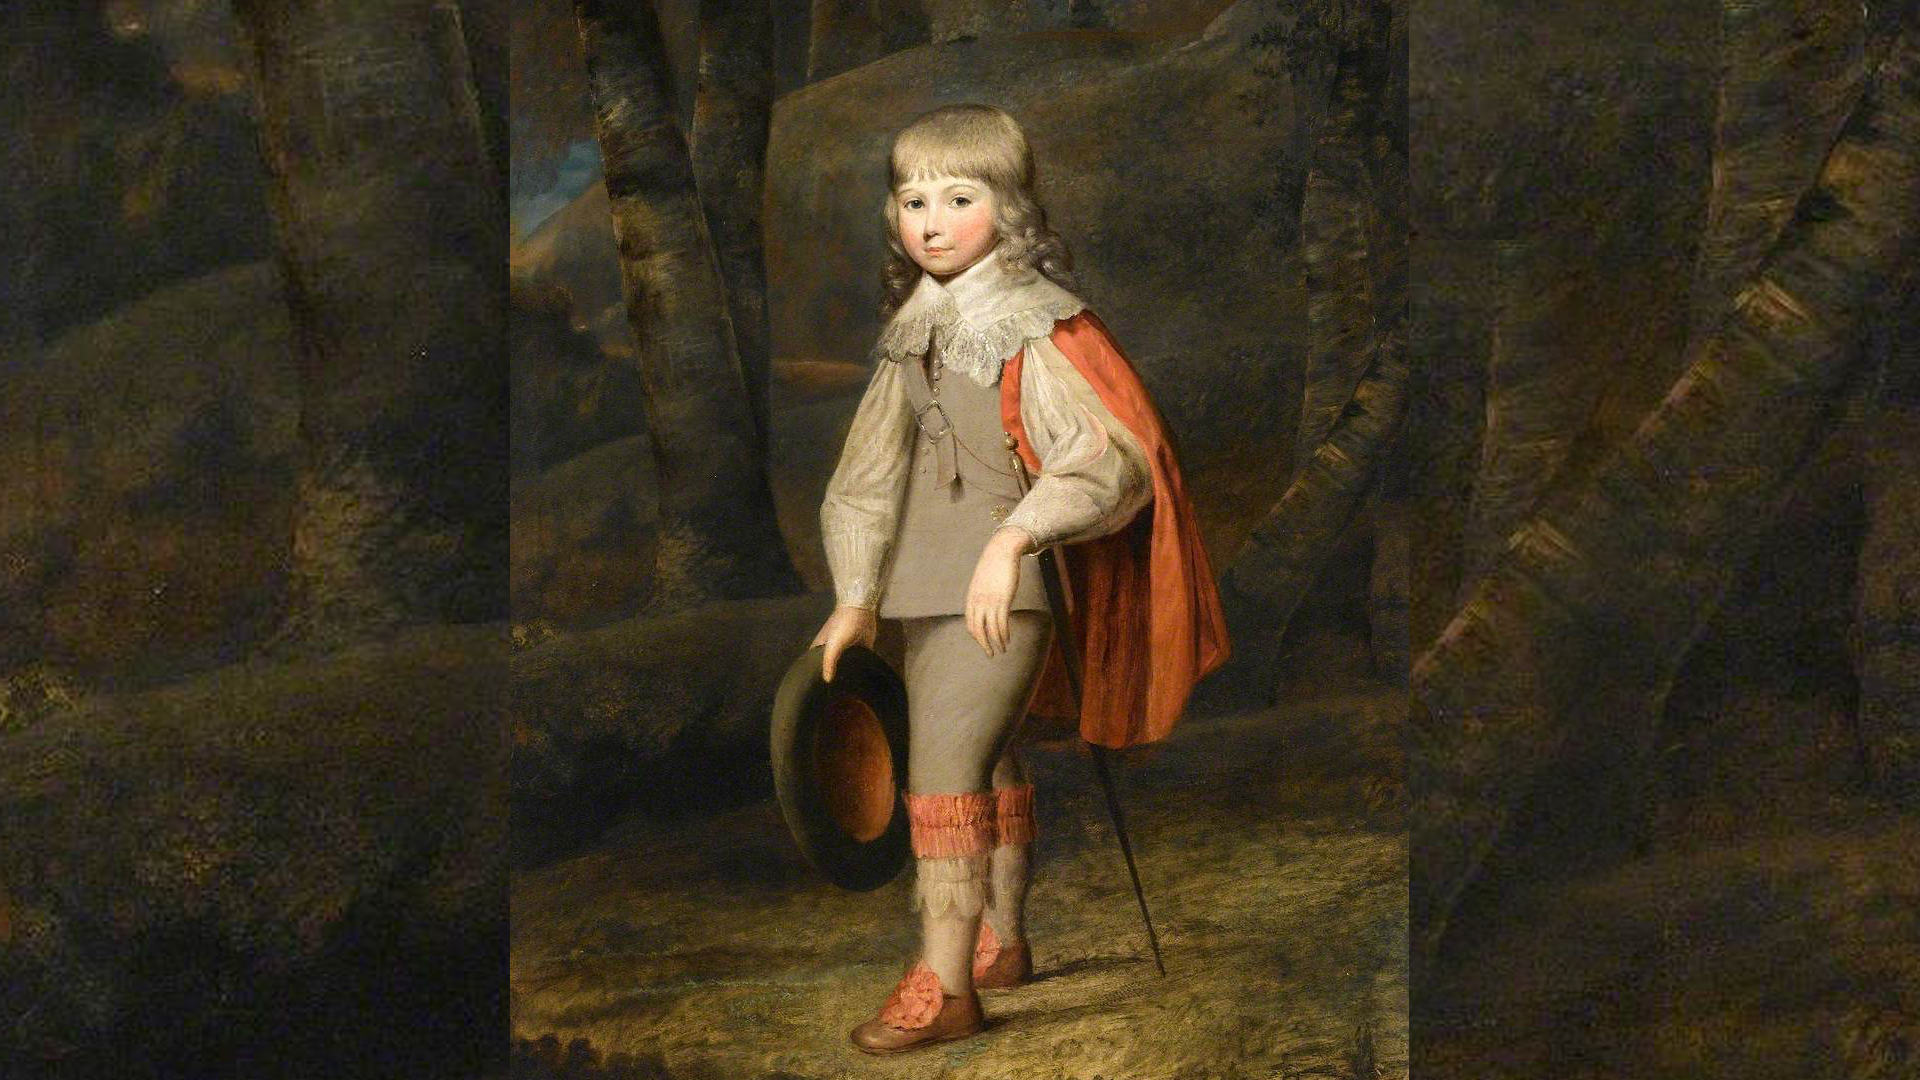 Exeter's Fine Art Collection: Childhood